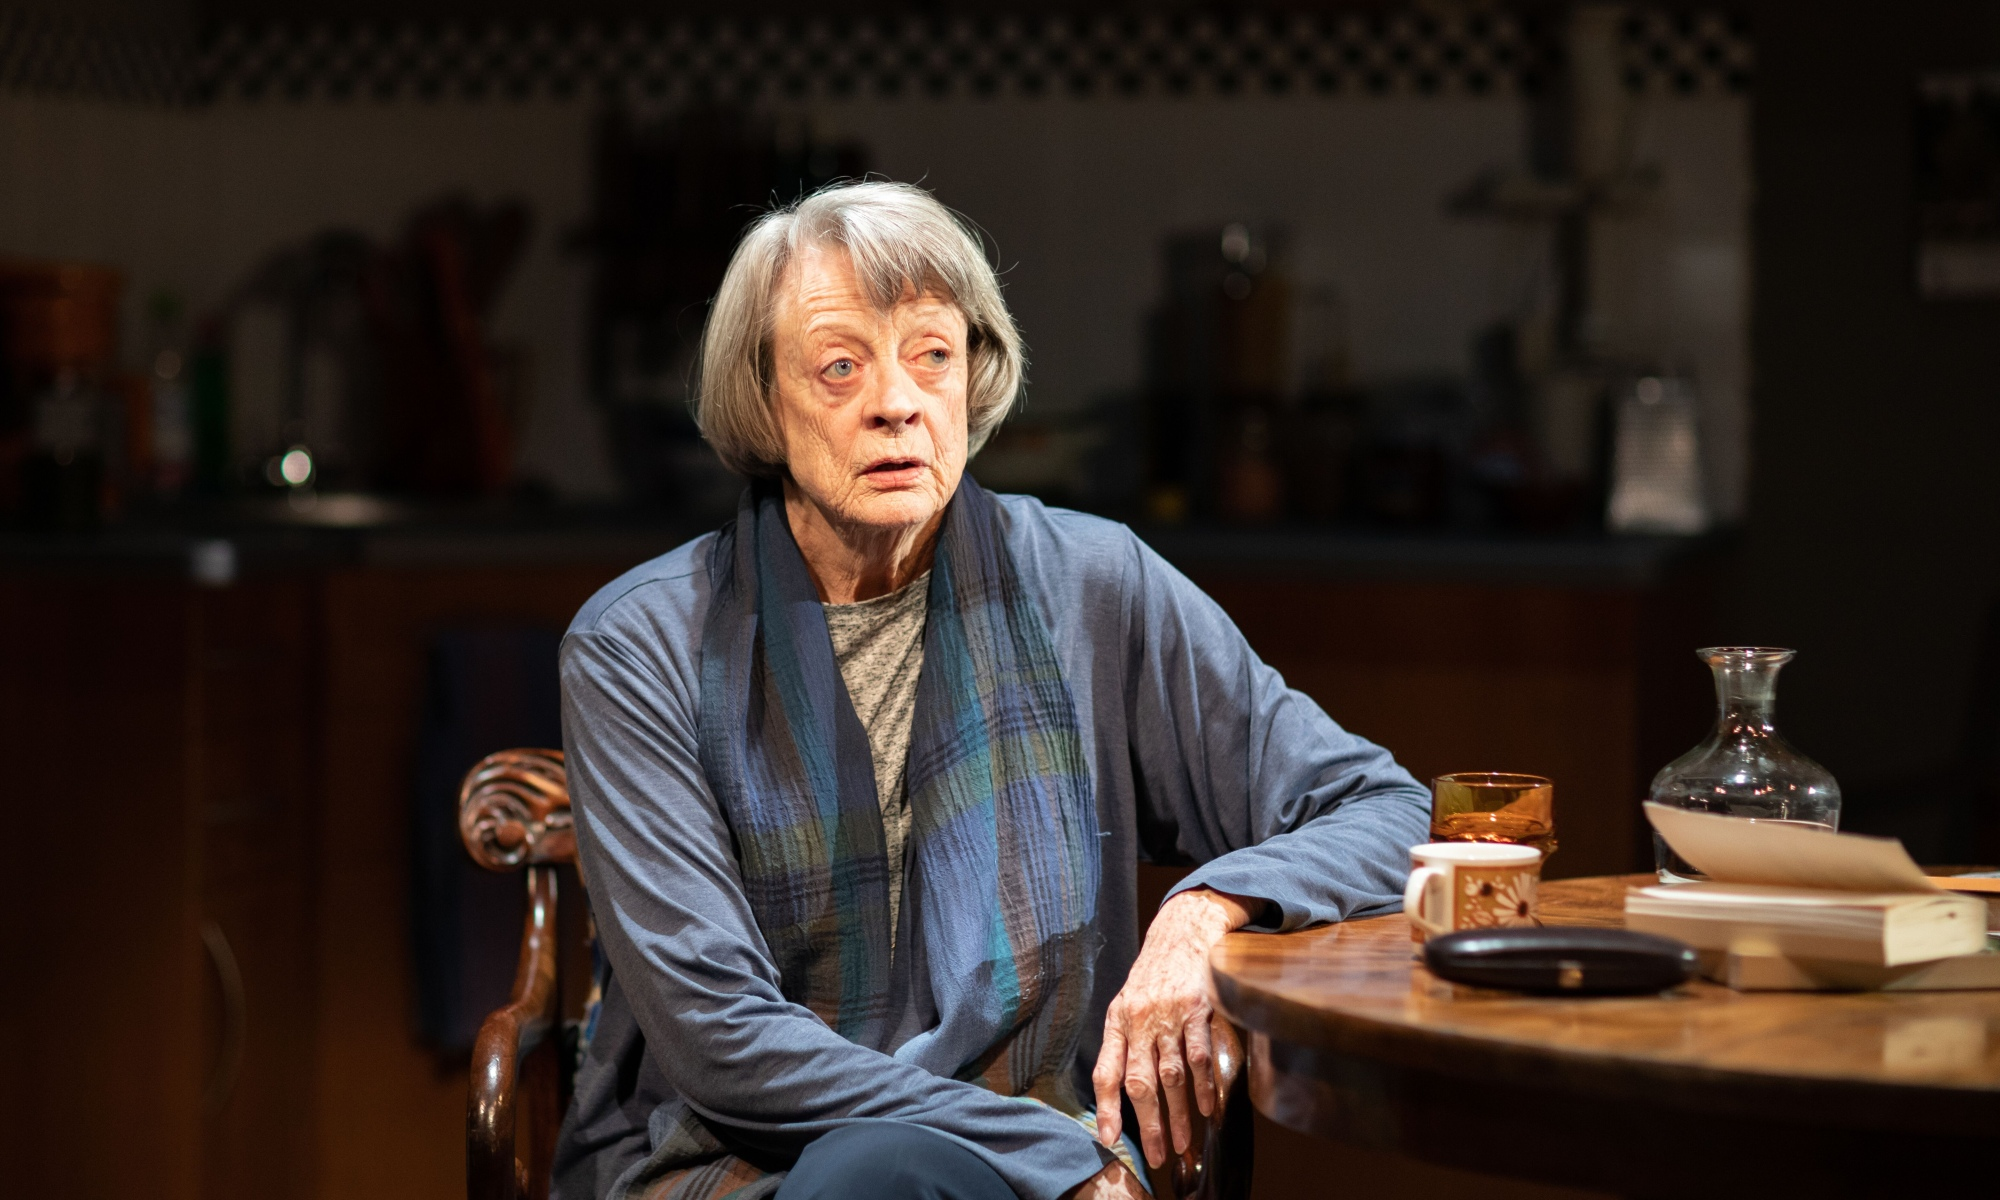 Maggie Smith wearing a blue shirt sits in a kitchen, at a wooden table with a glass of water and a book on it.